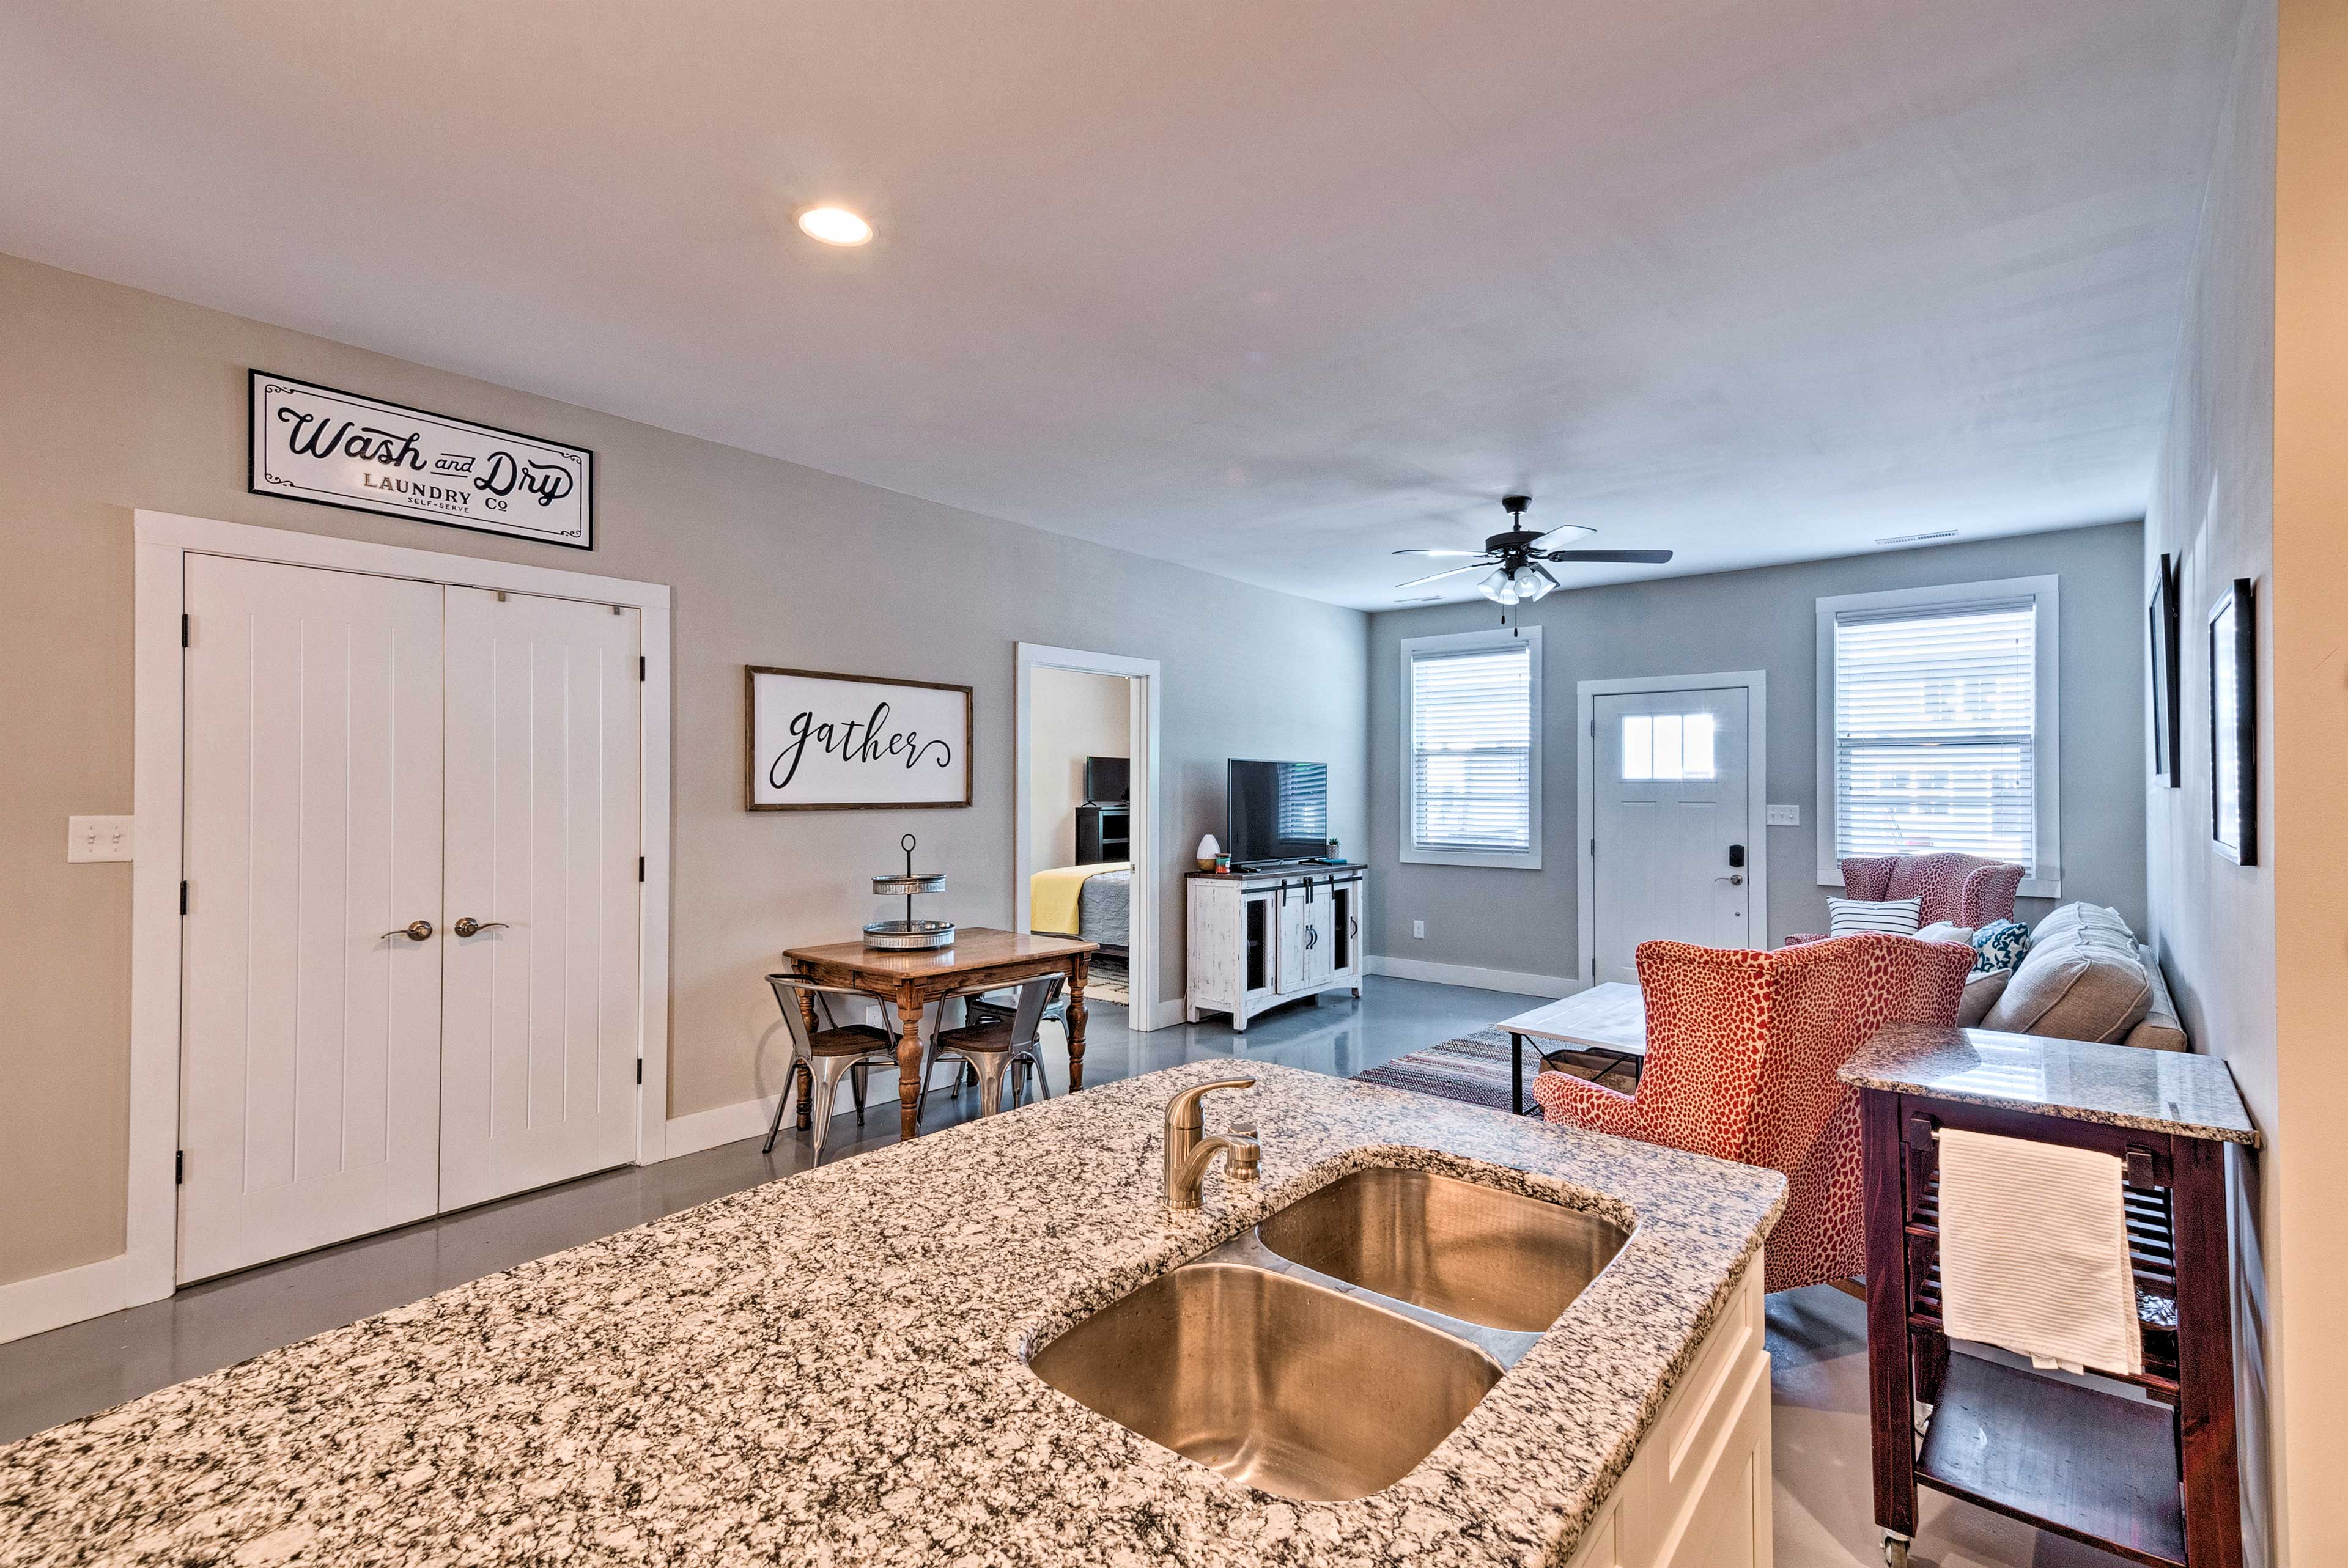 The kitchen is complete with granite counter tops & stainless steel appliances.